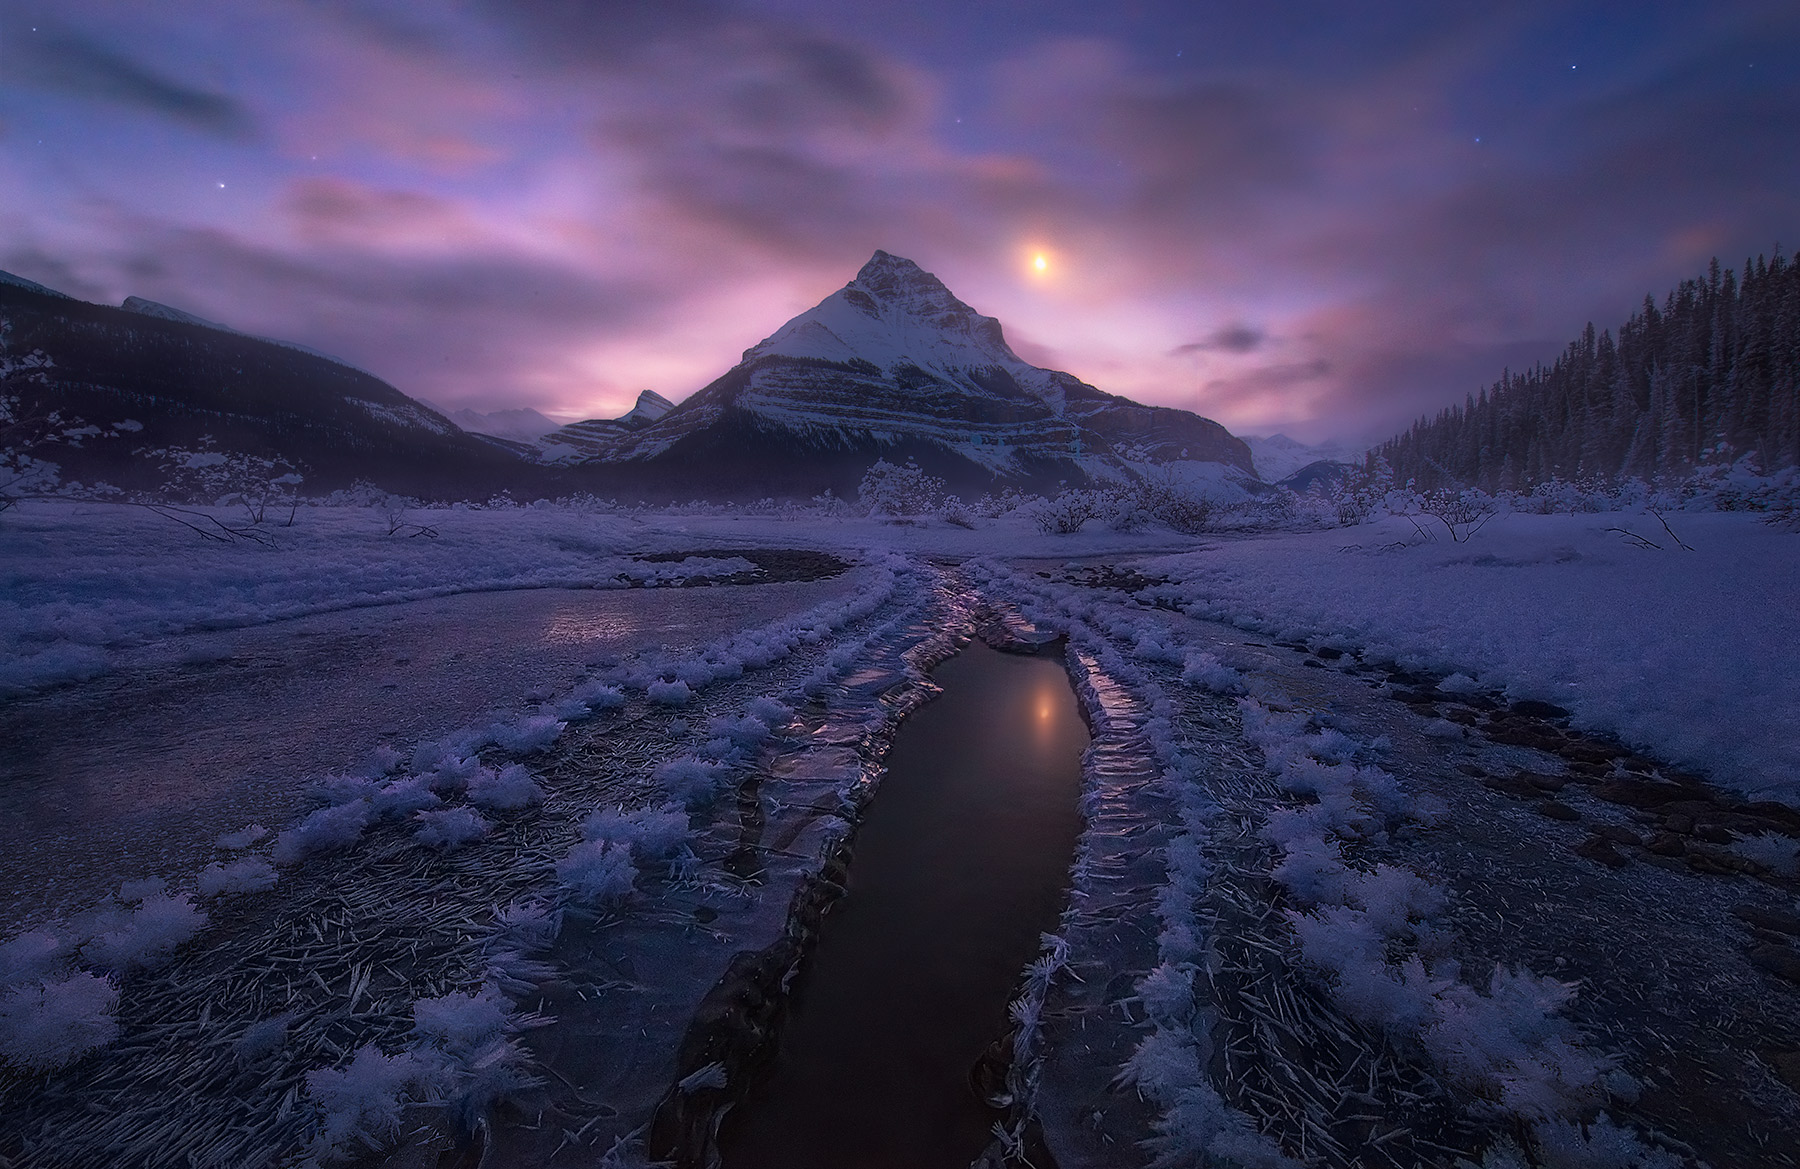 hoar frost, frost, ice, reflection, canadian rockies, canada, jasper, photo